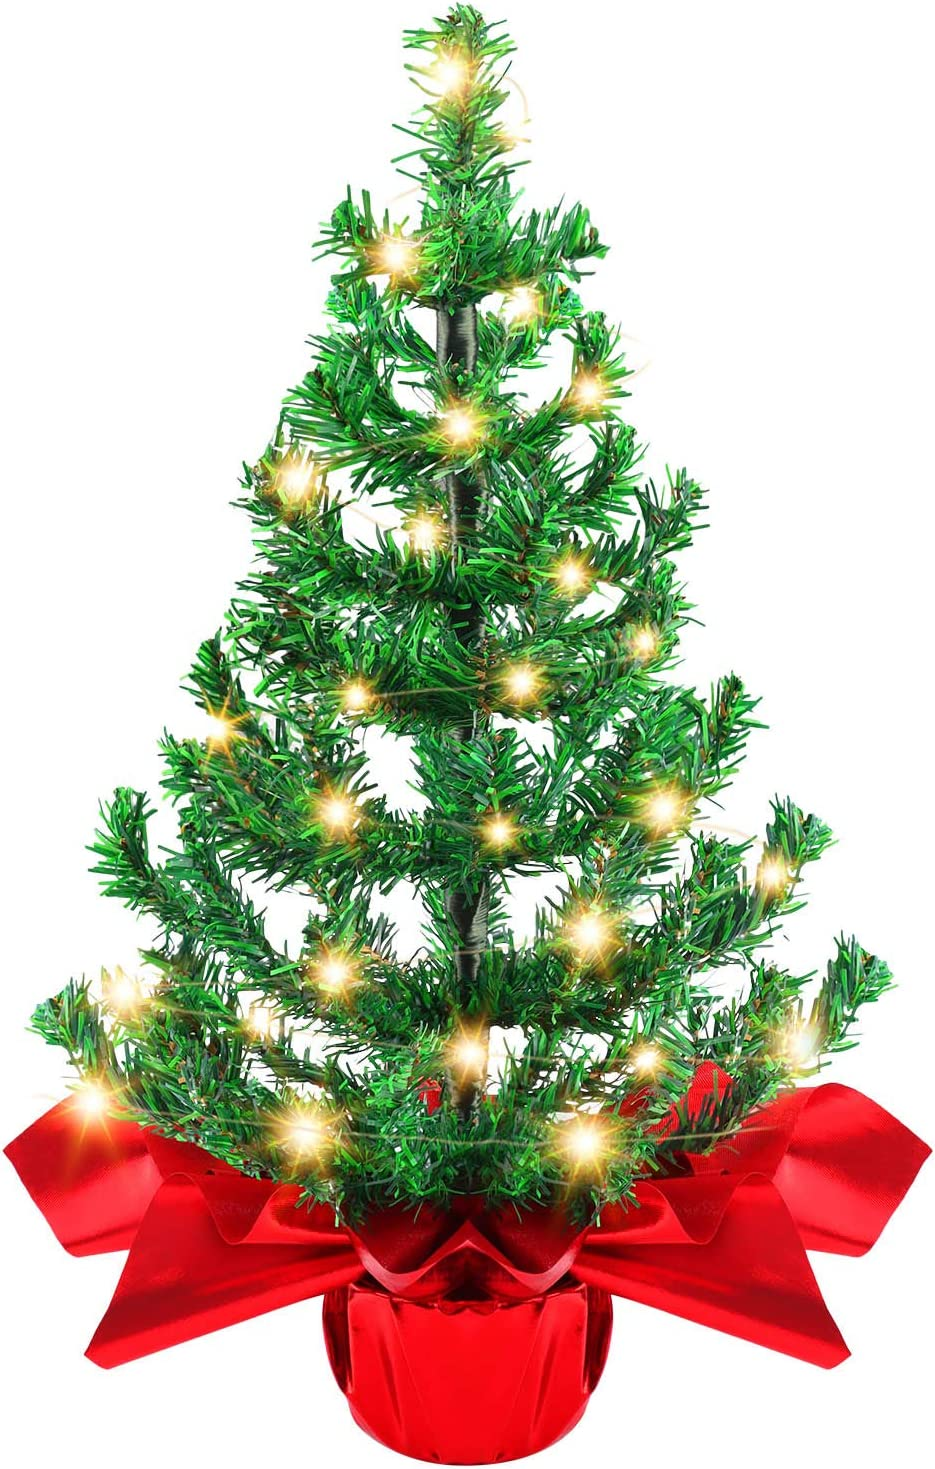 Becoyou Small Christmas Tree with Ornaments Mini Max 85% OFF shopping